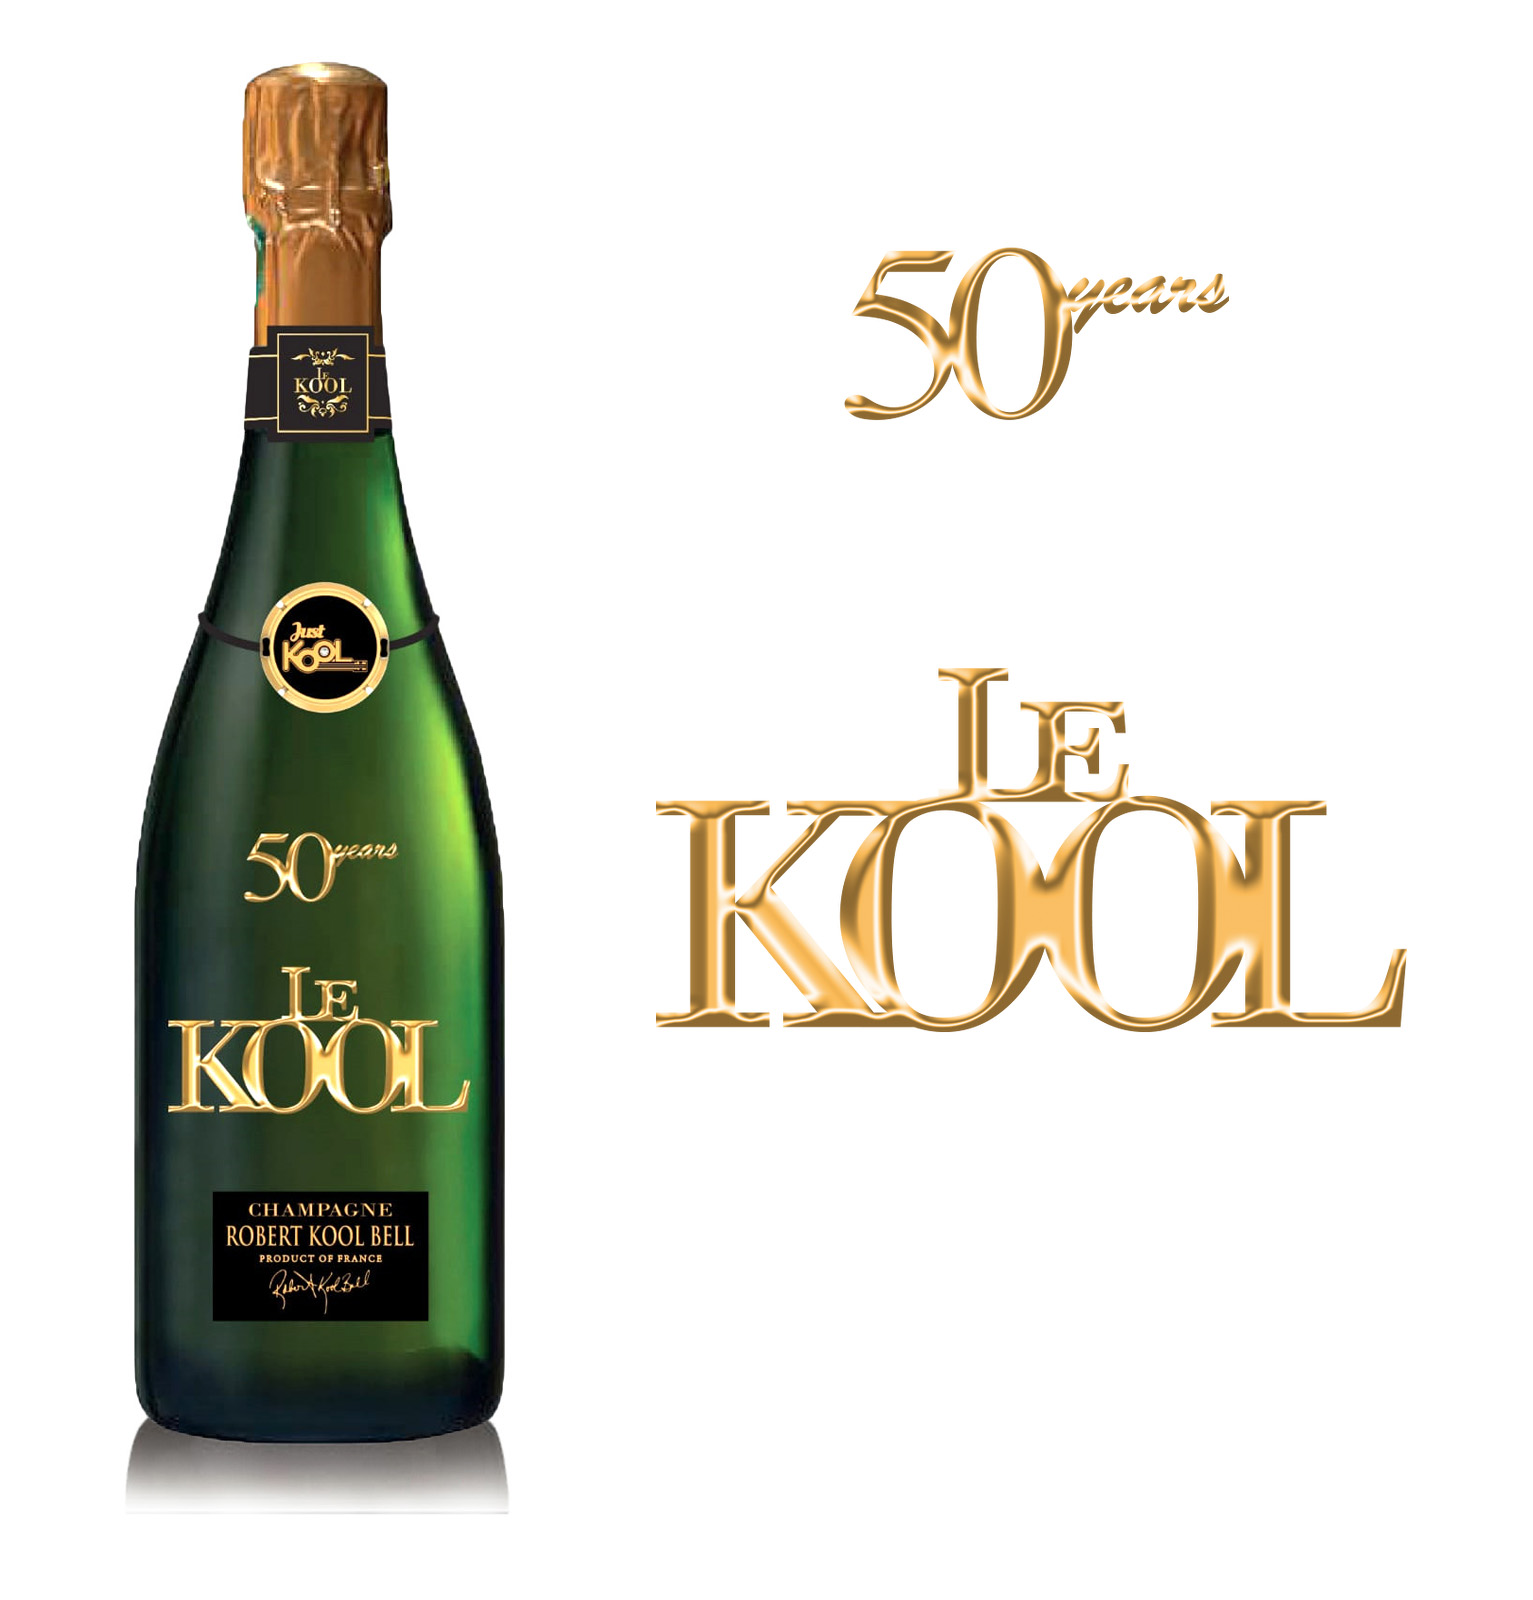 Just Kool Champagne